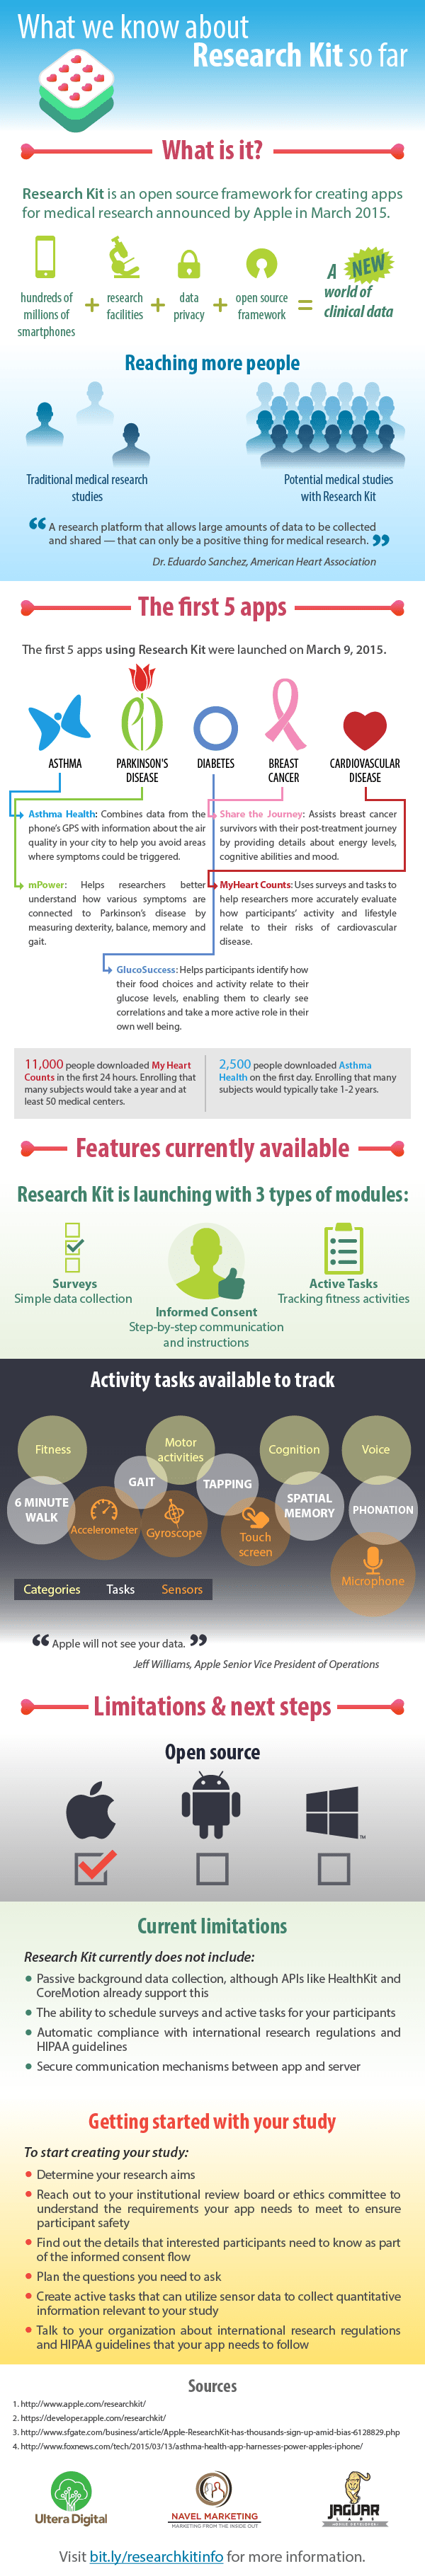 Infographic: What we know about Research Kit so far